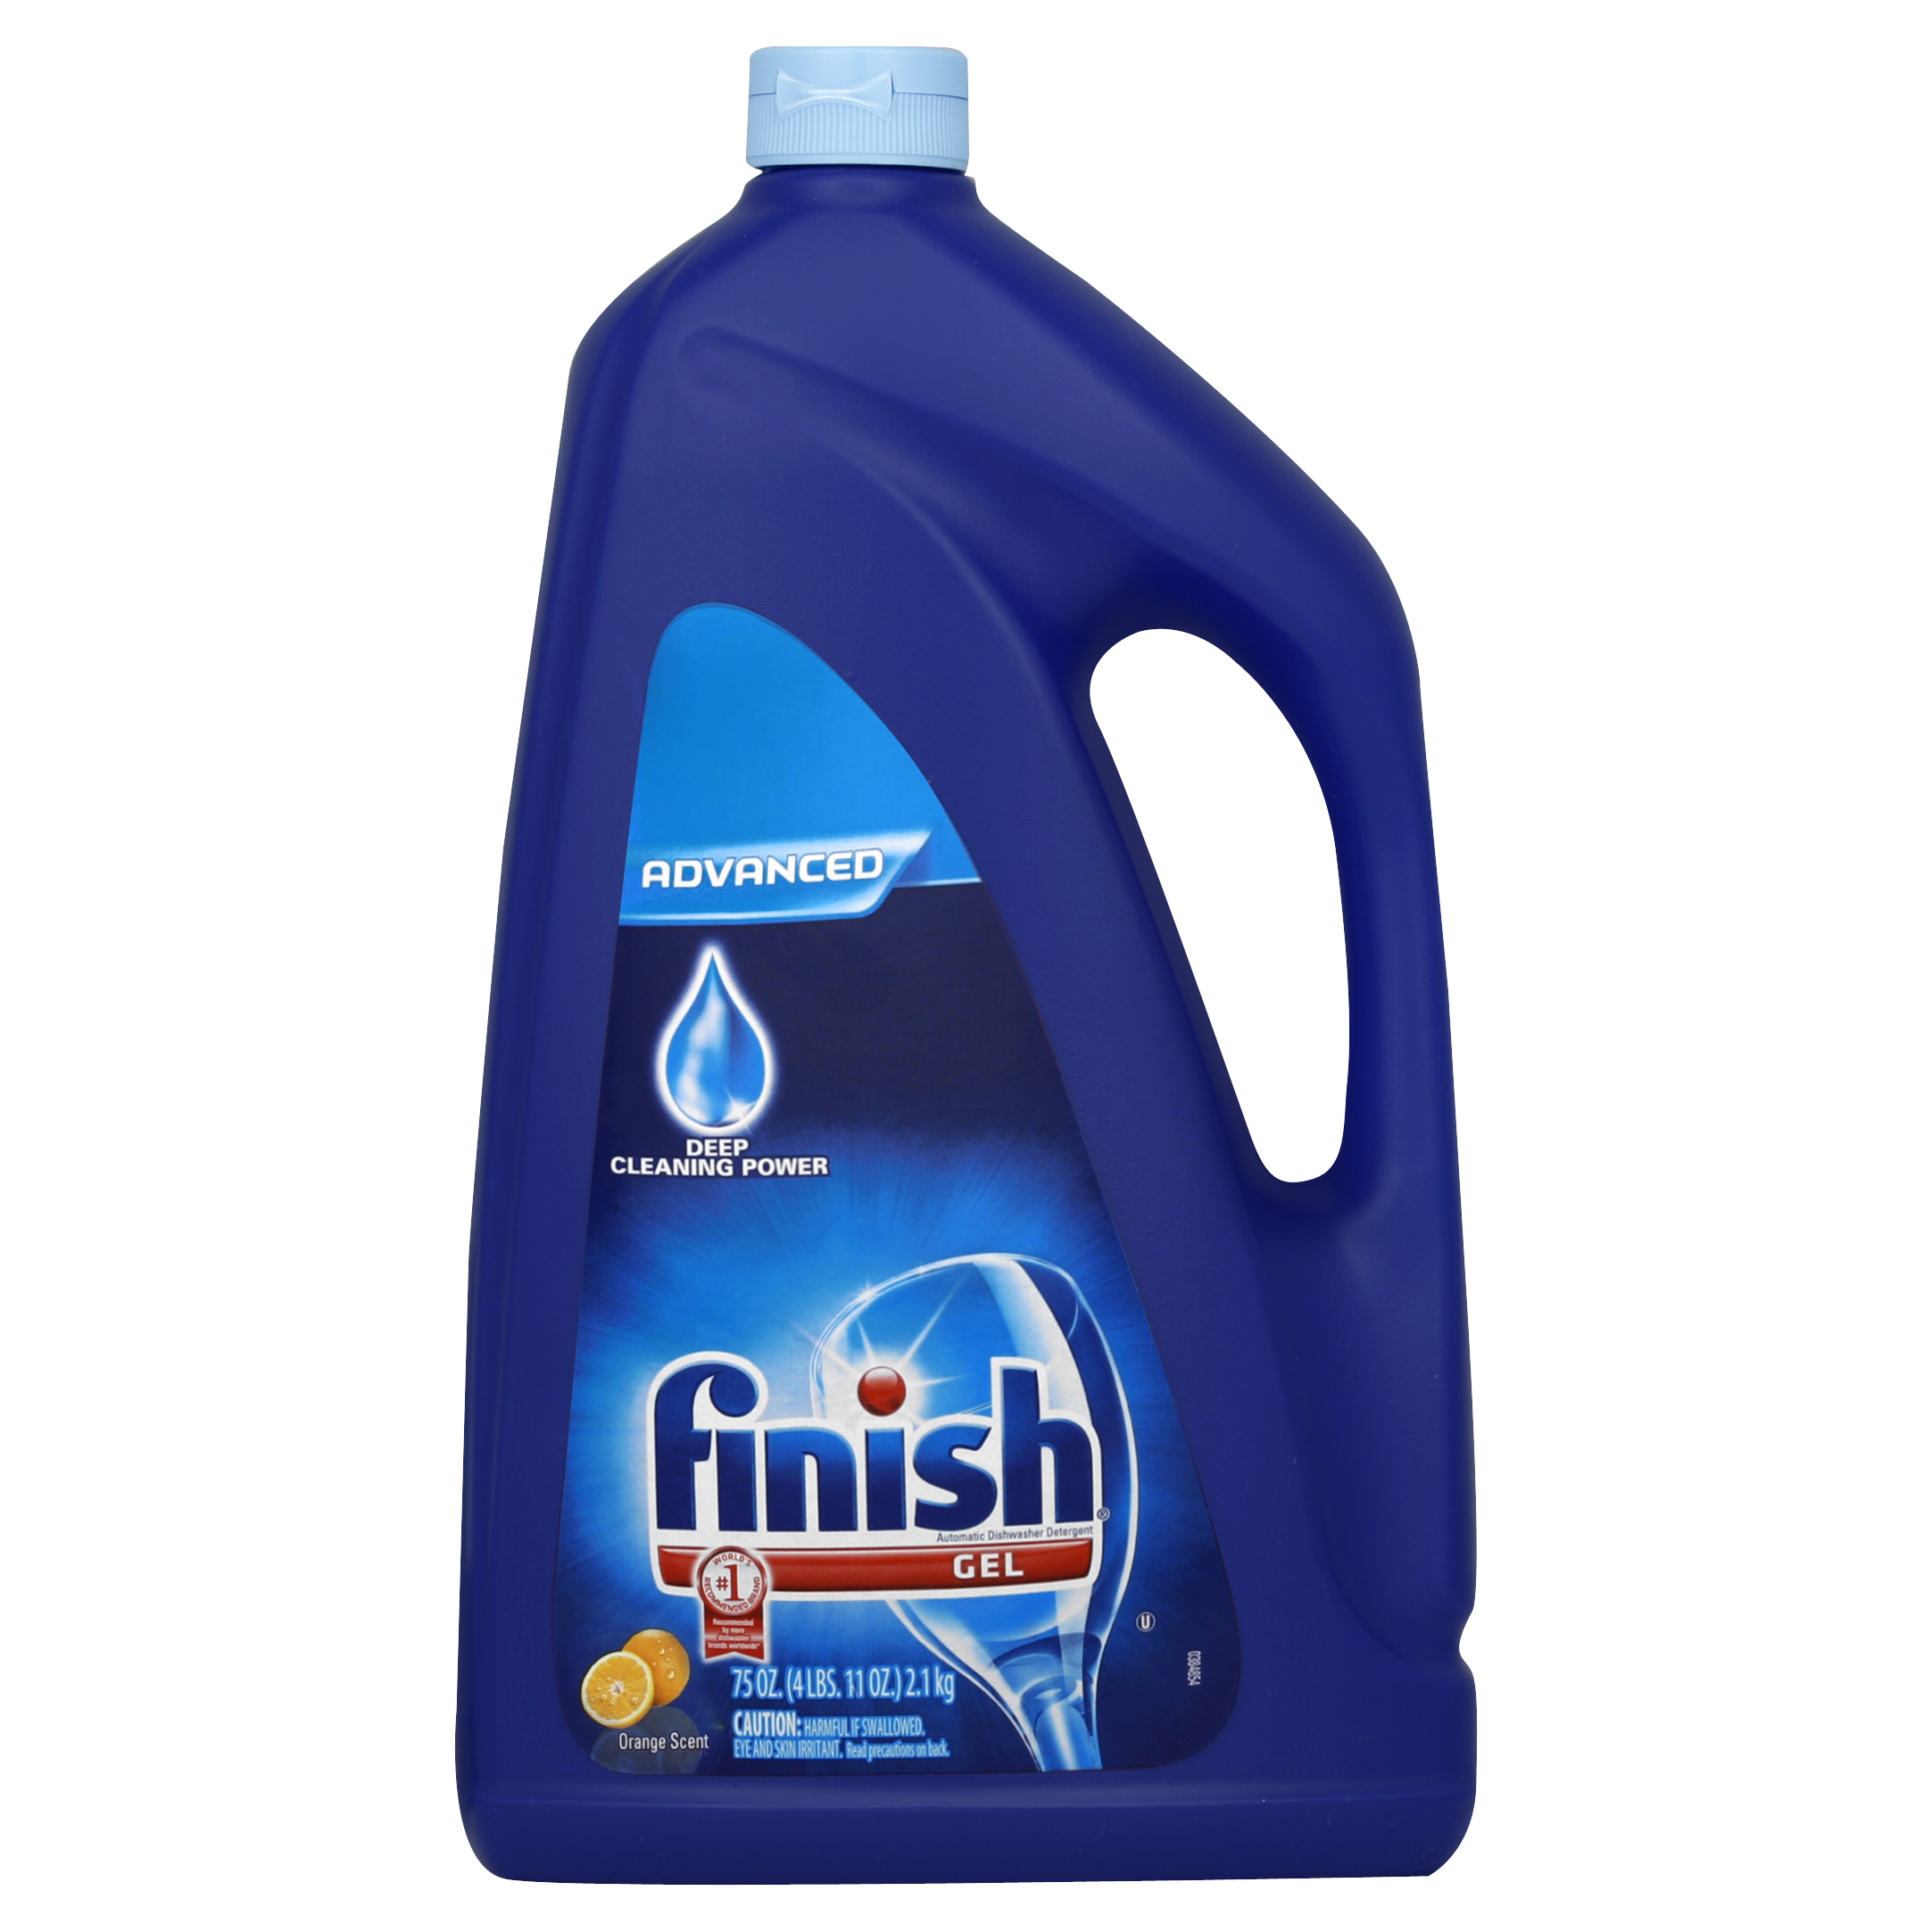 Finish Gel Dishwasher Detergent, Orange Fresh Scent, 75 Ounce